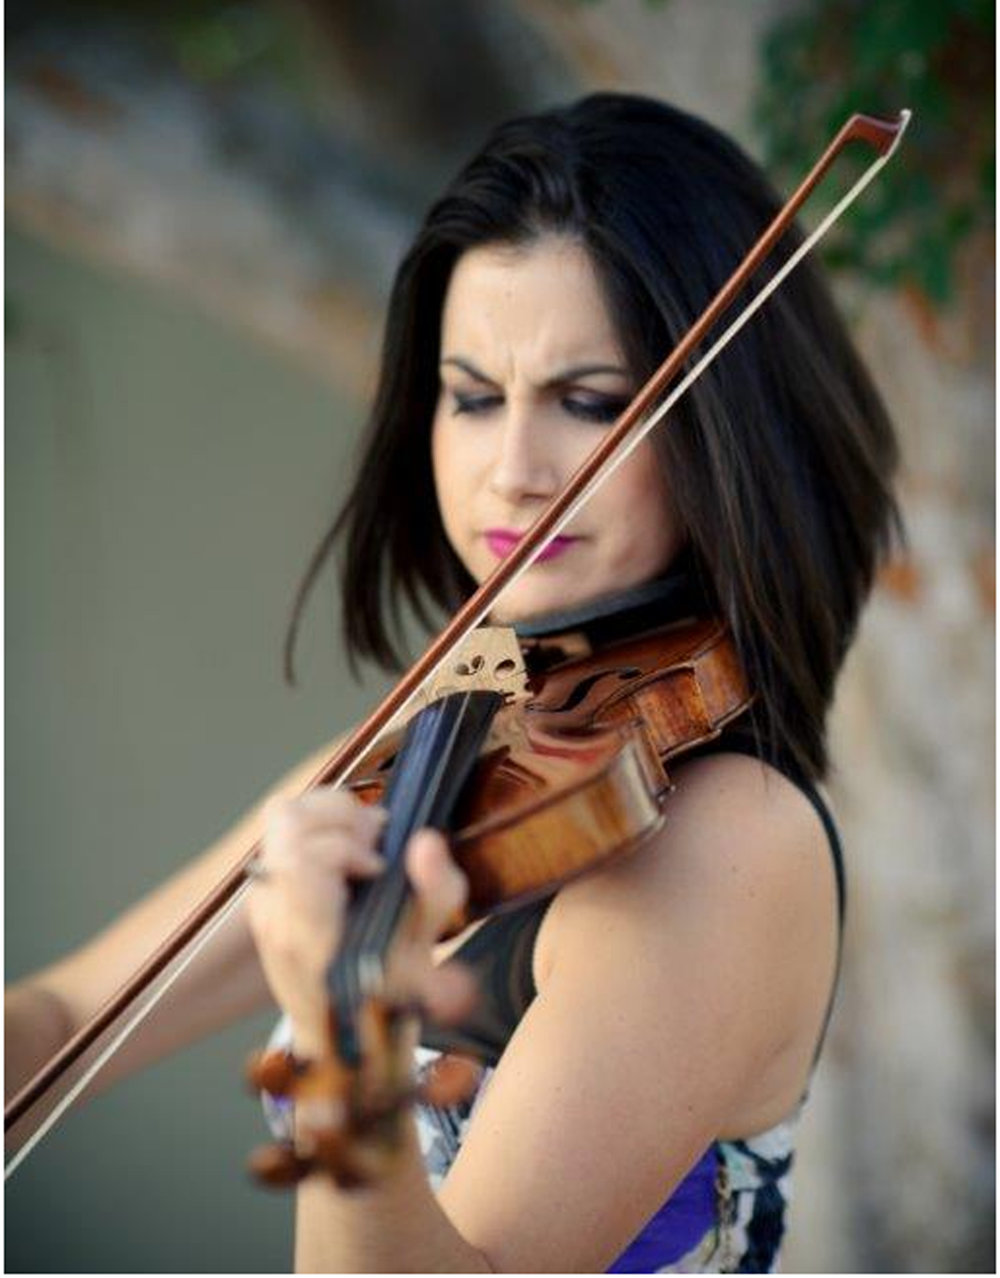 Visit  Ms. Belen's personal website at   www.BelenViolin.com